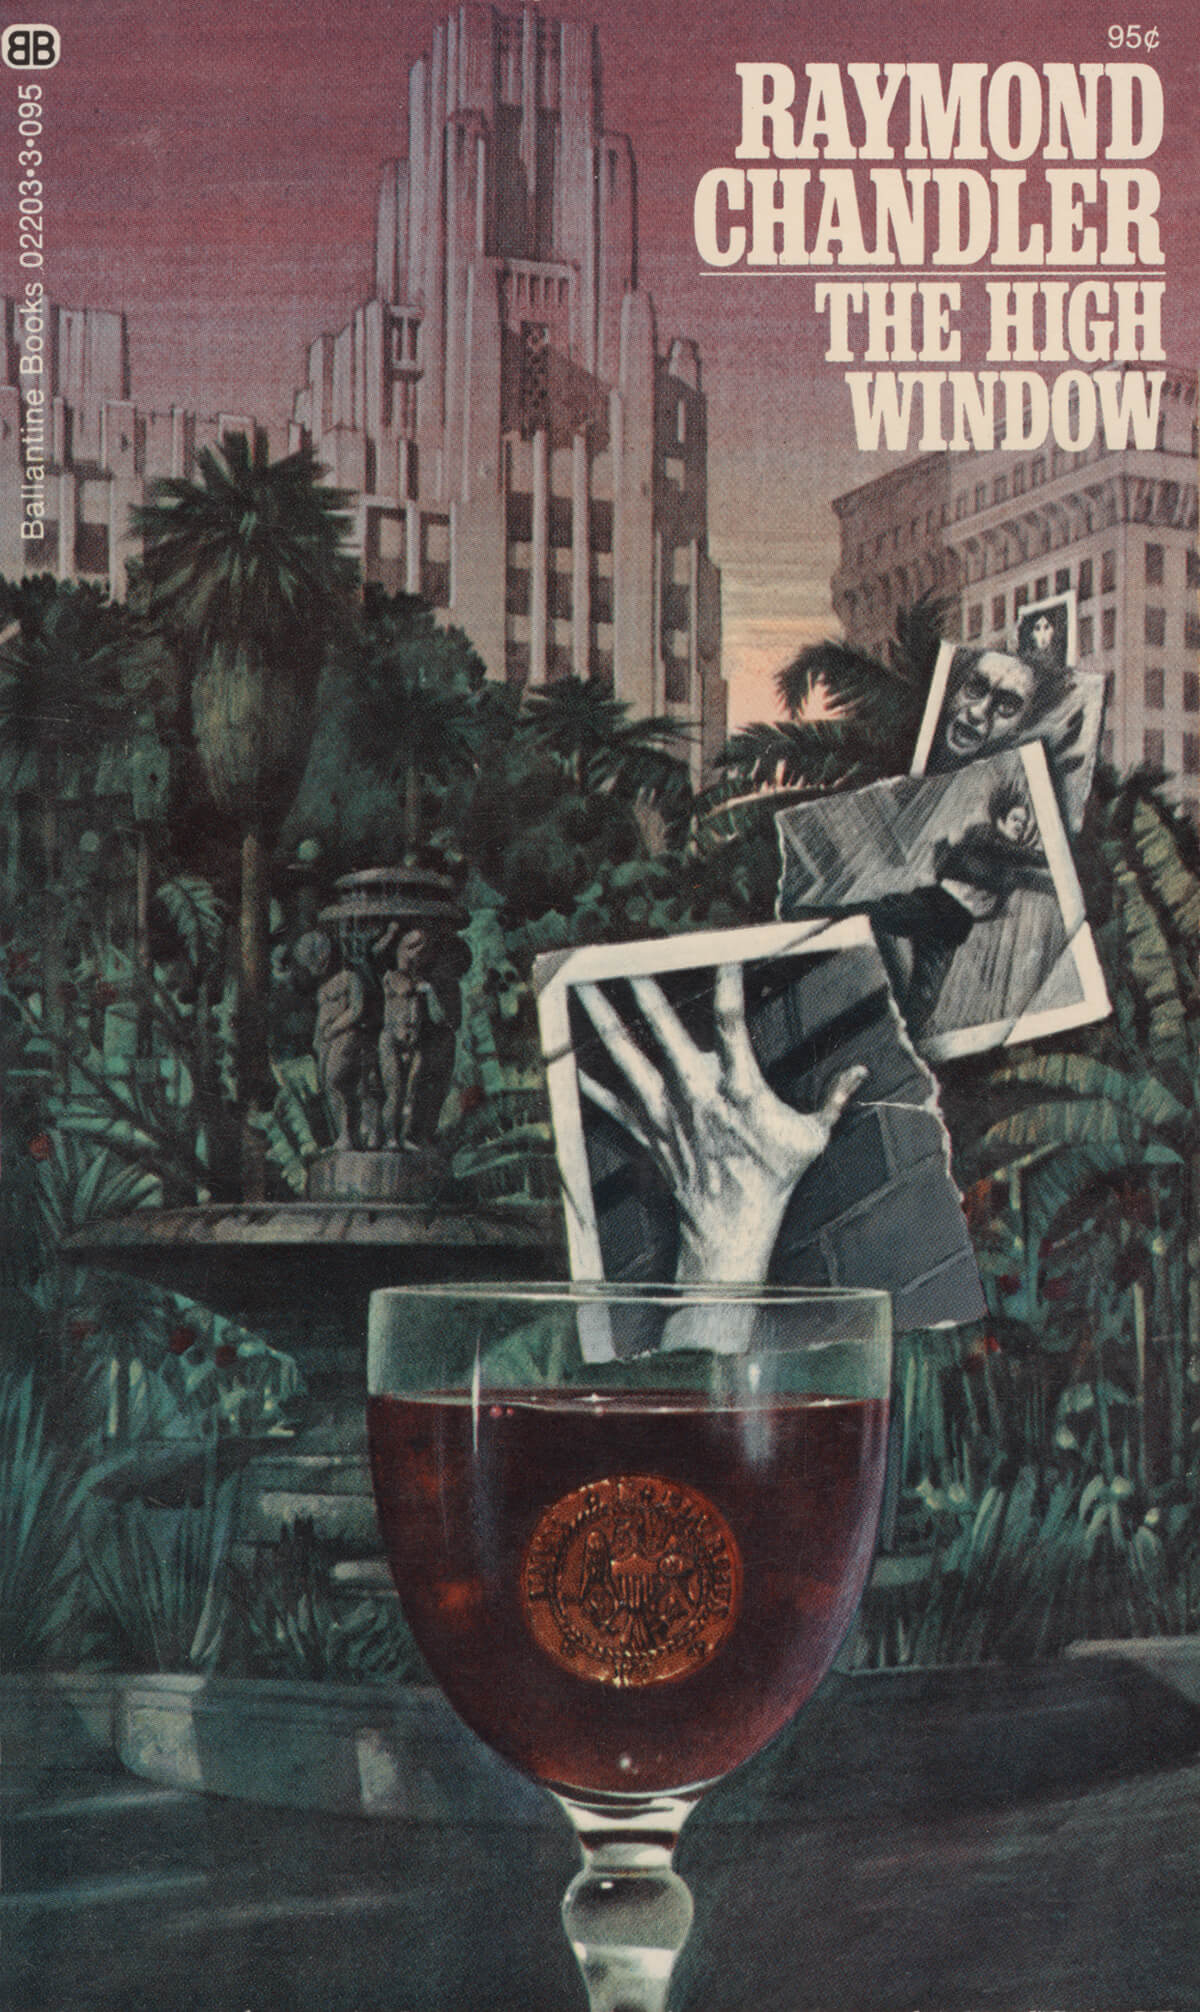 The High Window by Raymond Chandler, Cover by Tom Adams